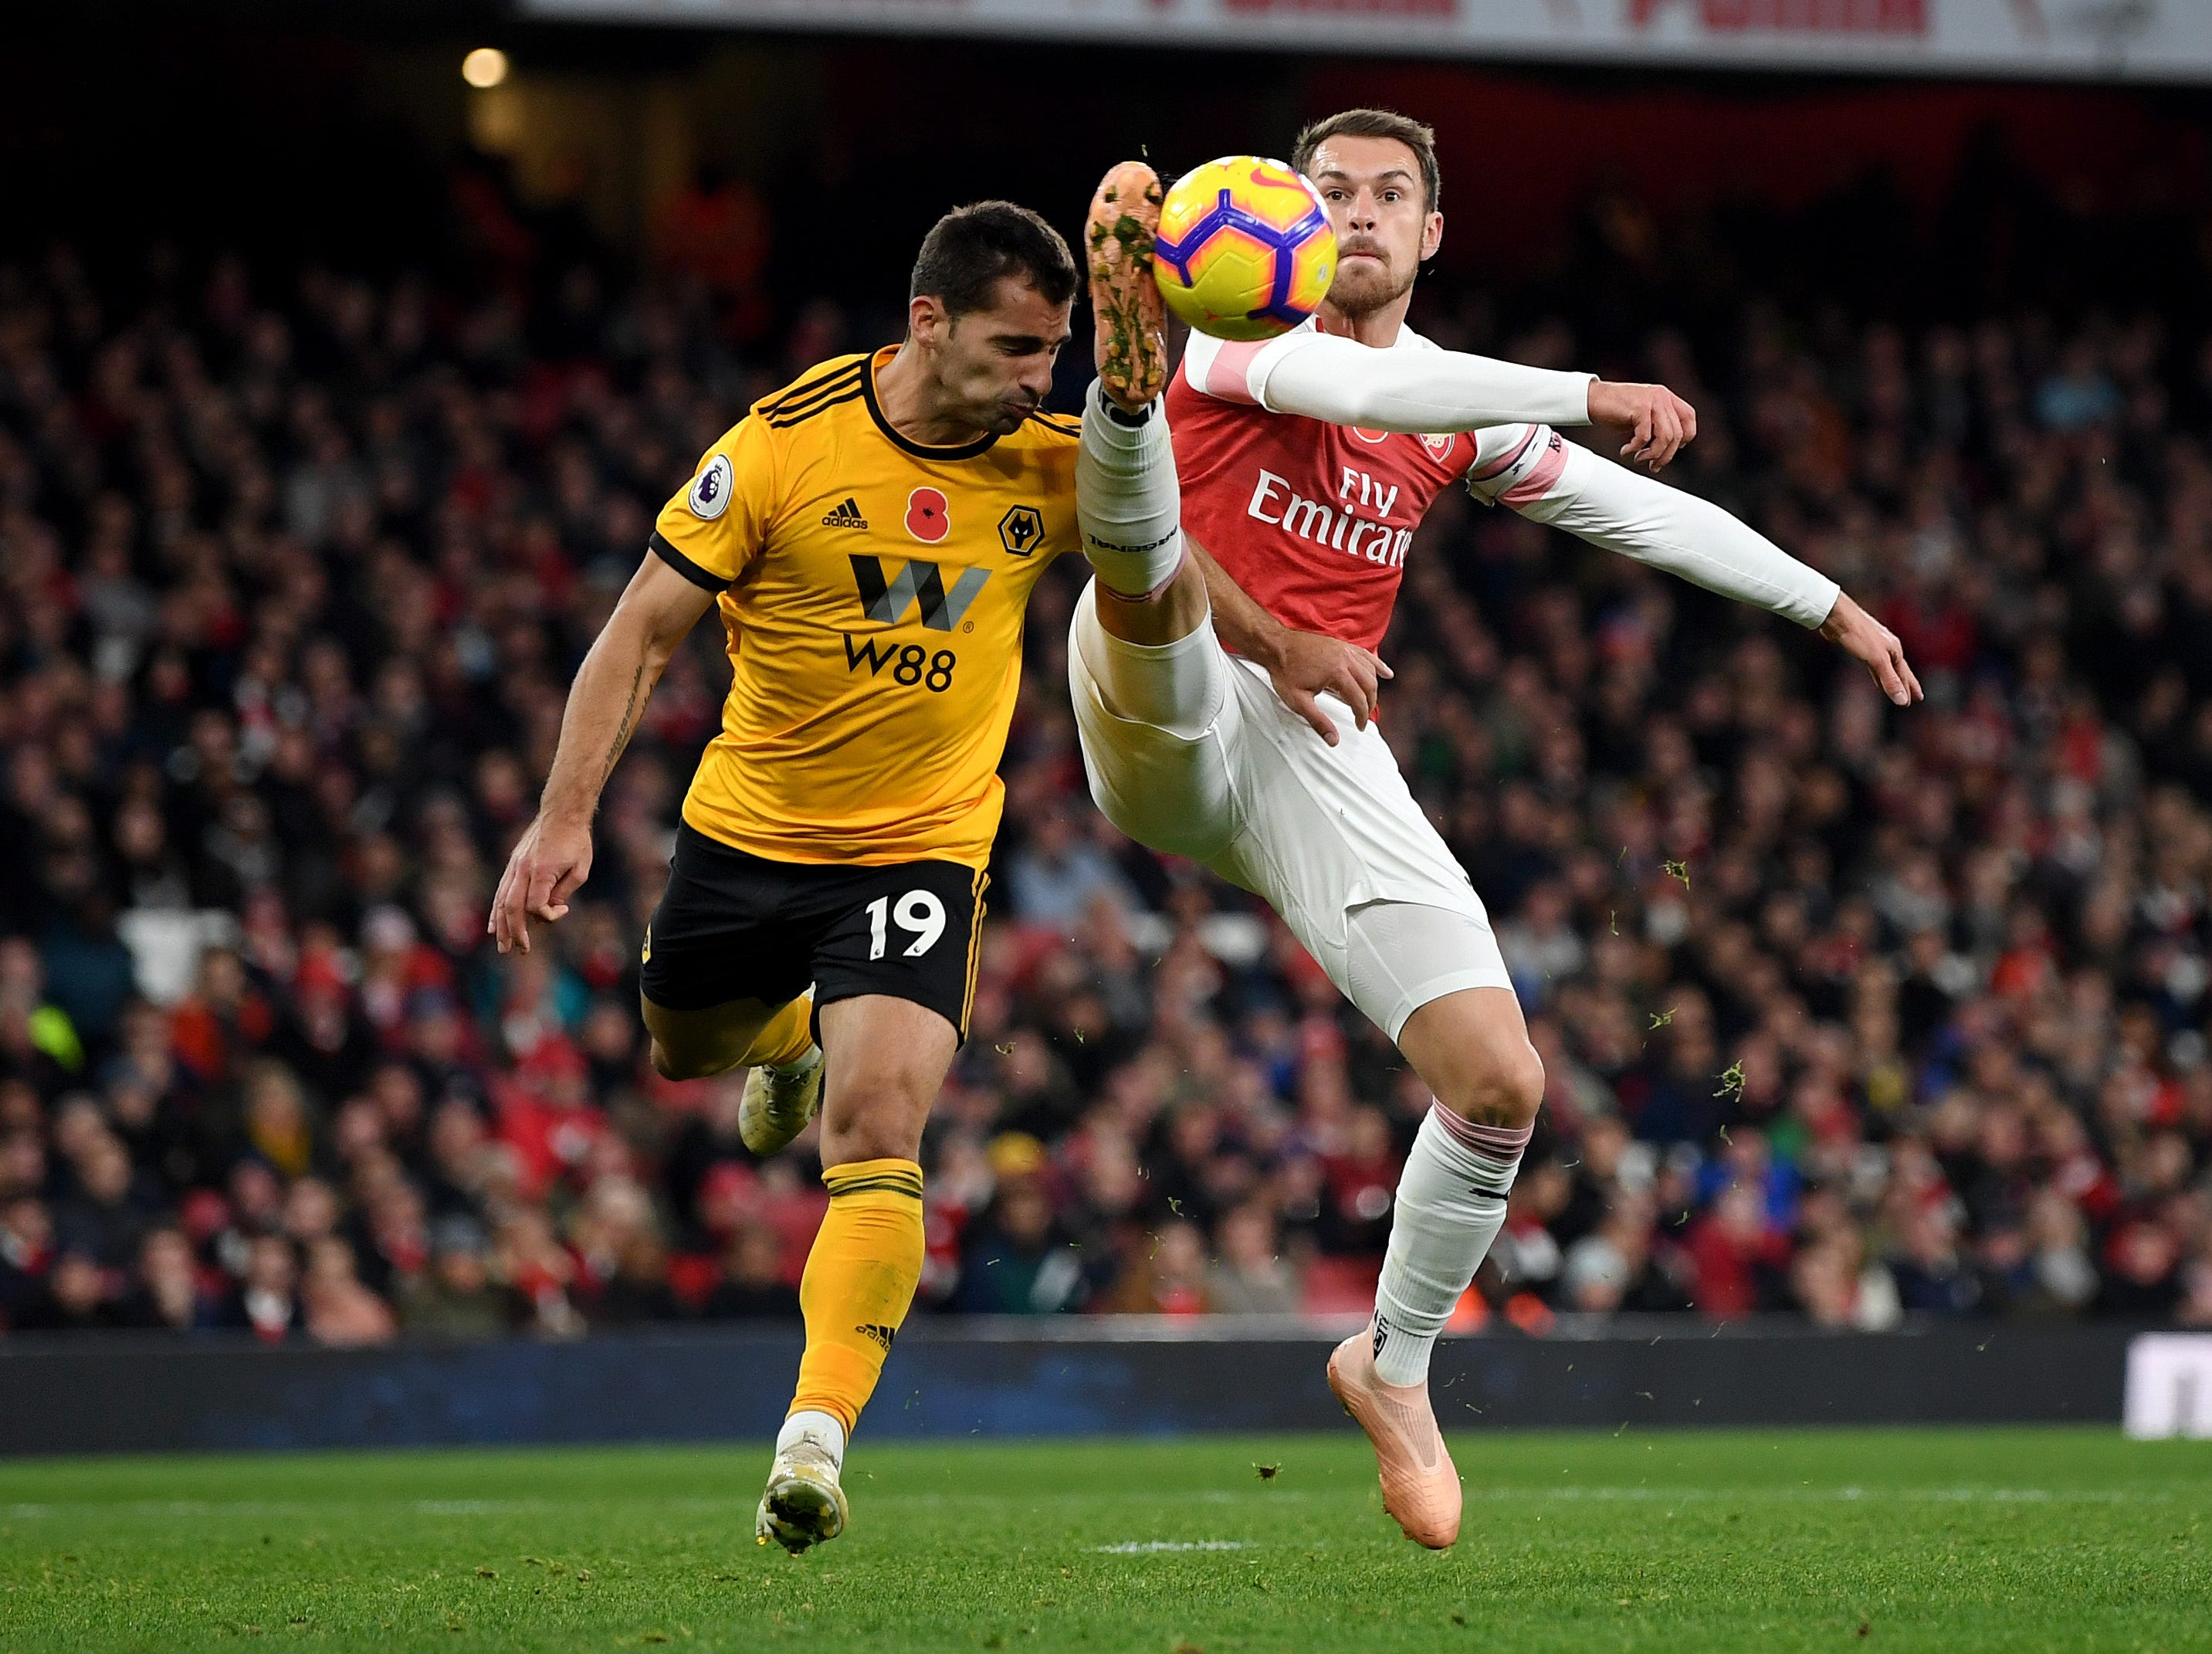 Arsenal's Aaron Ramsey controls the ball in  while being challenged by Jonny Otto of Wolverhampton.